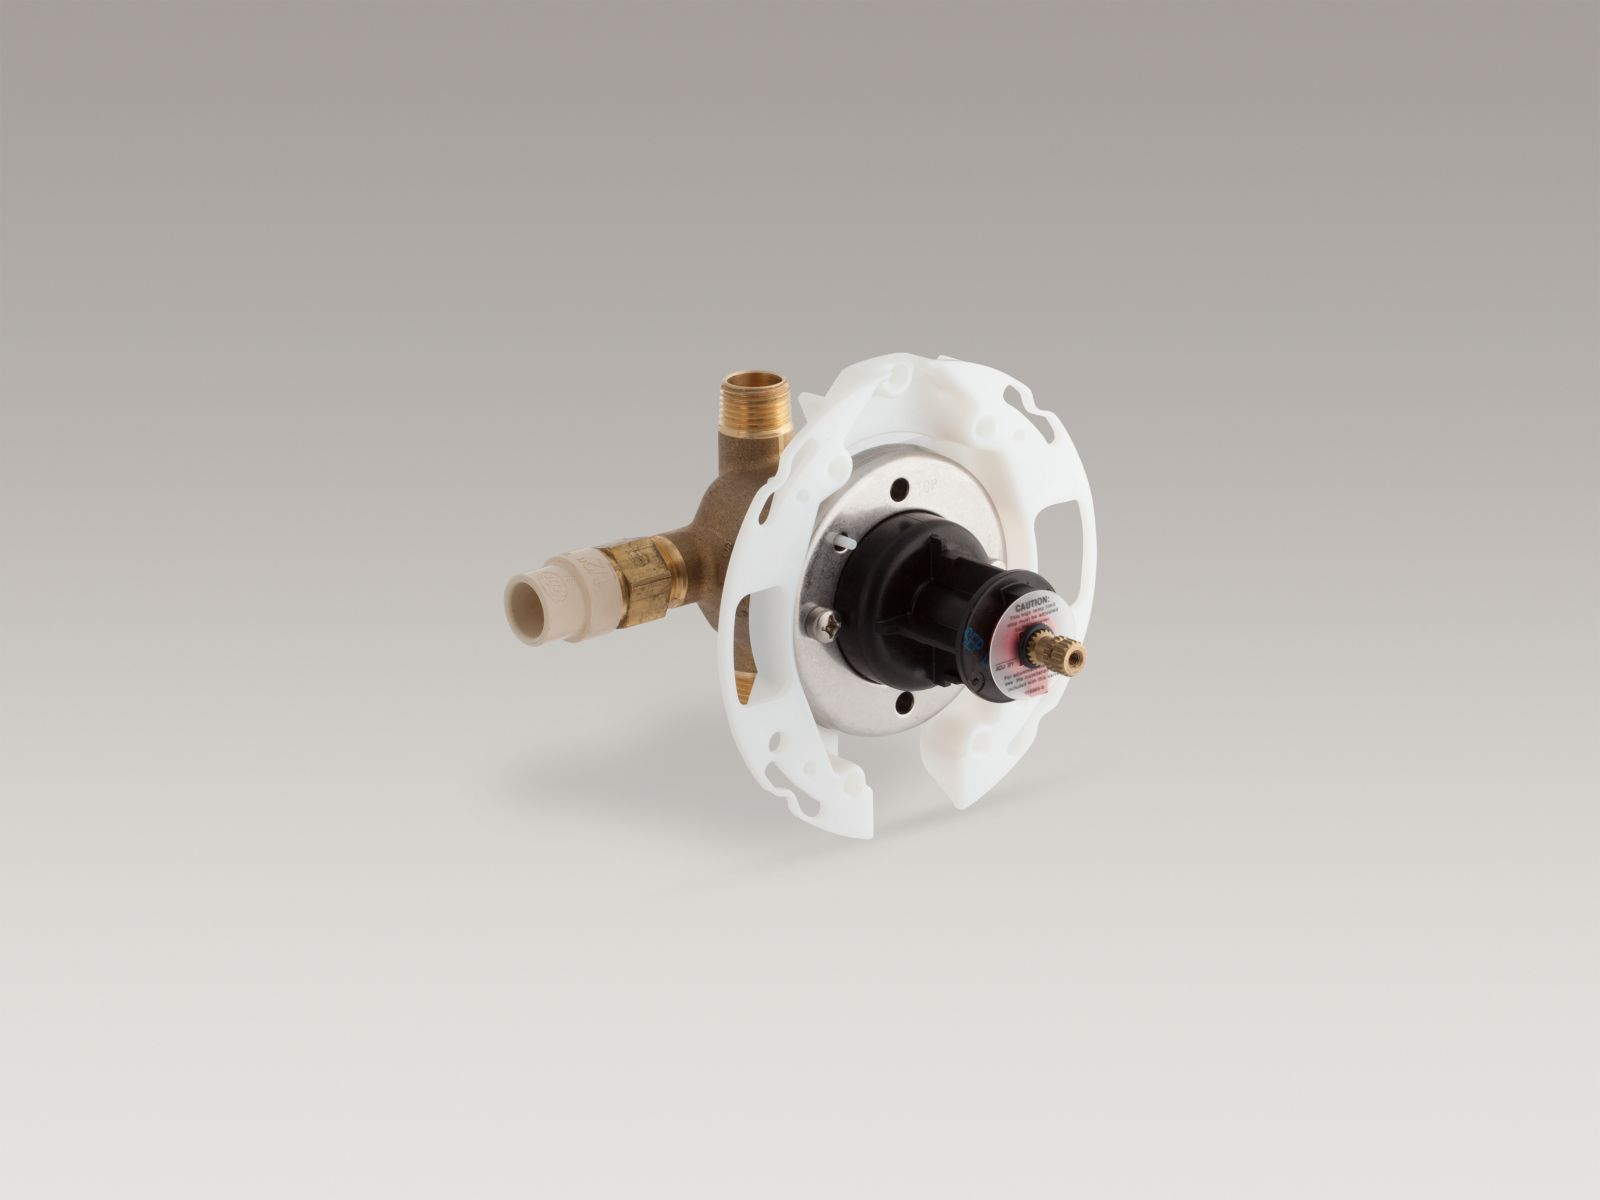 Kohler K-P304-CX-NA Rite-Temp Shower Valve with CPVC Inlets